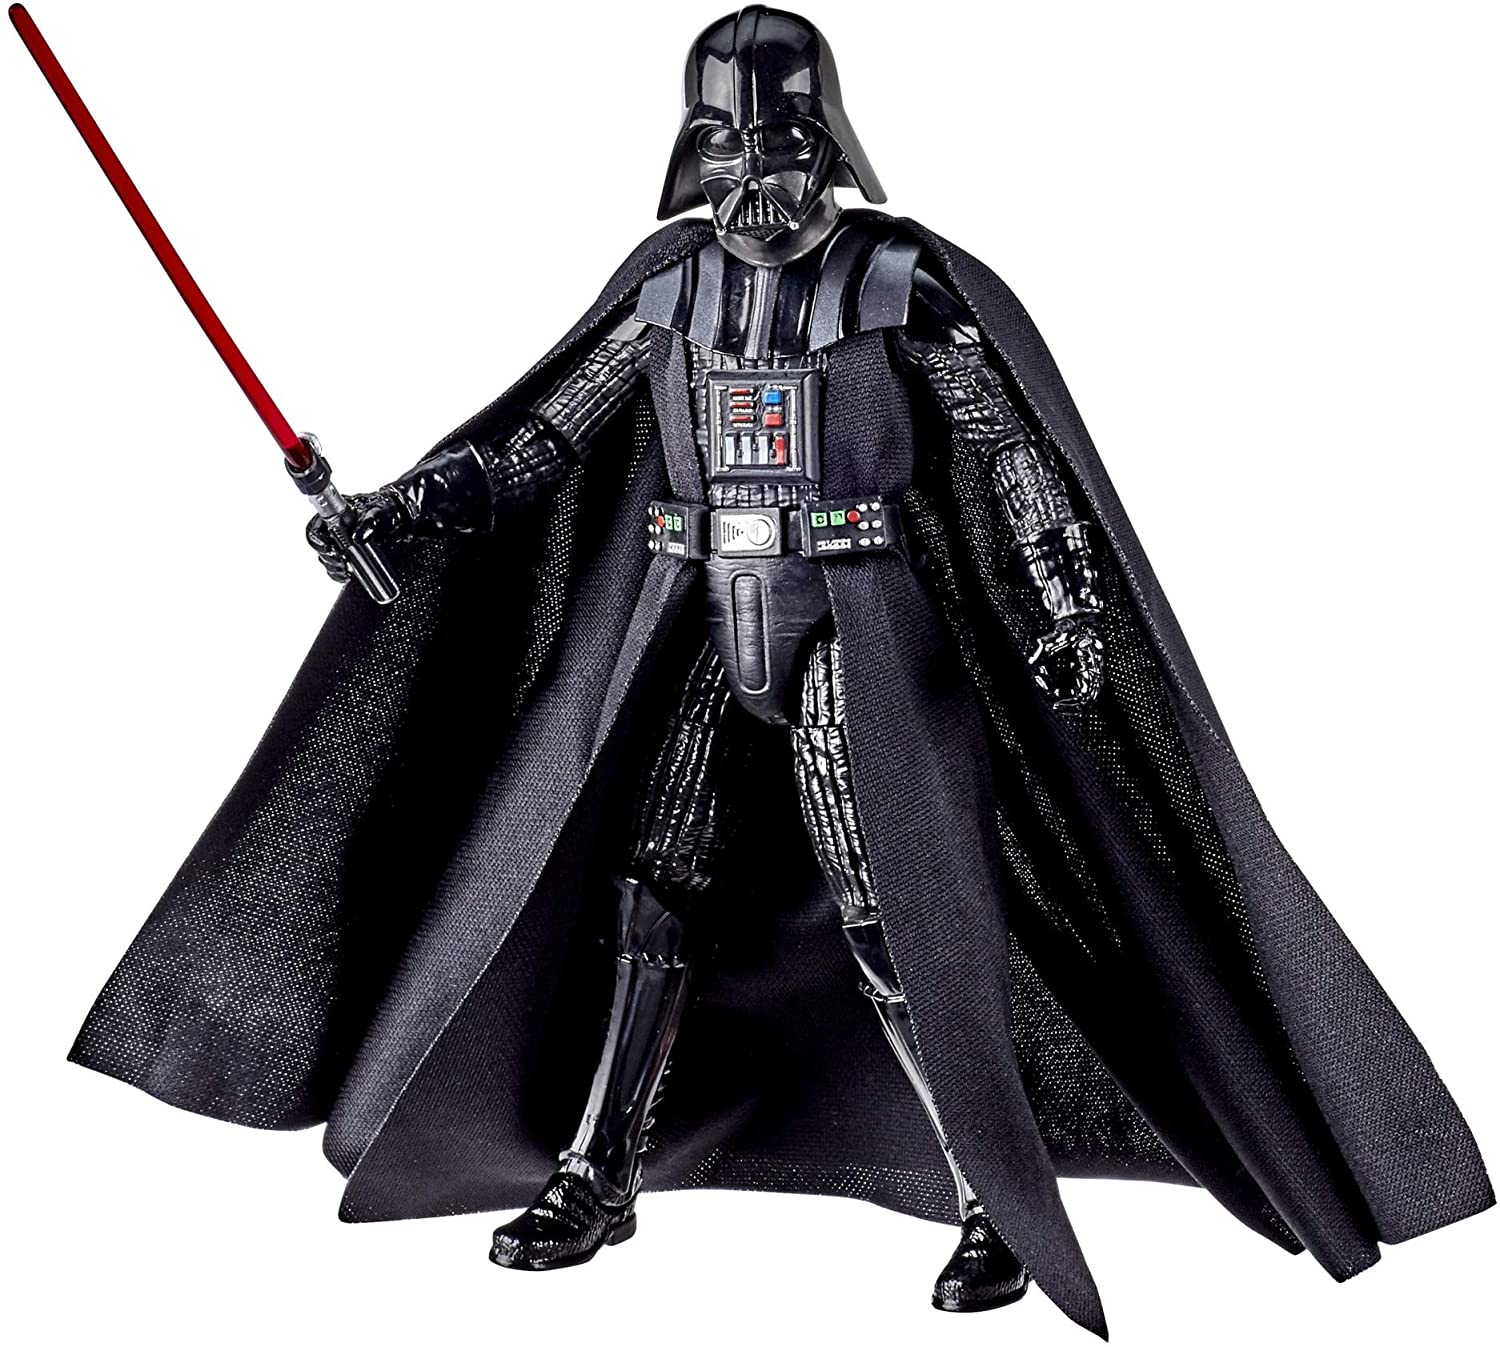 Star Wars The Black Series Darth Vader 6-Inch Scale The Empire Strikes Back 40th Anniversary Collectible Figure, Ages 4 and Up